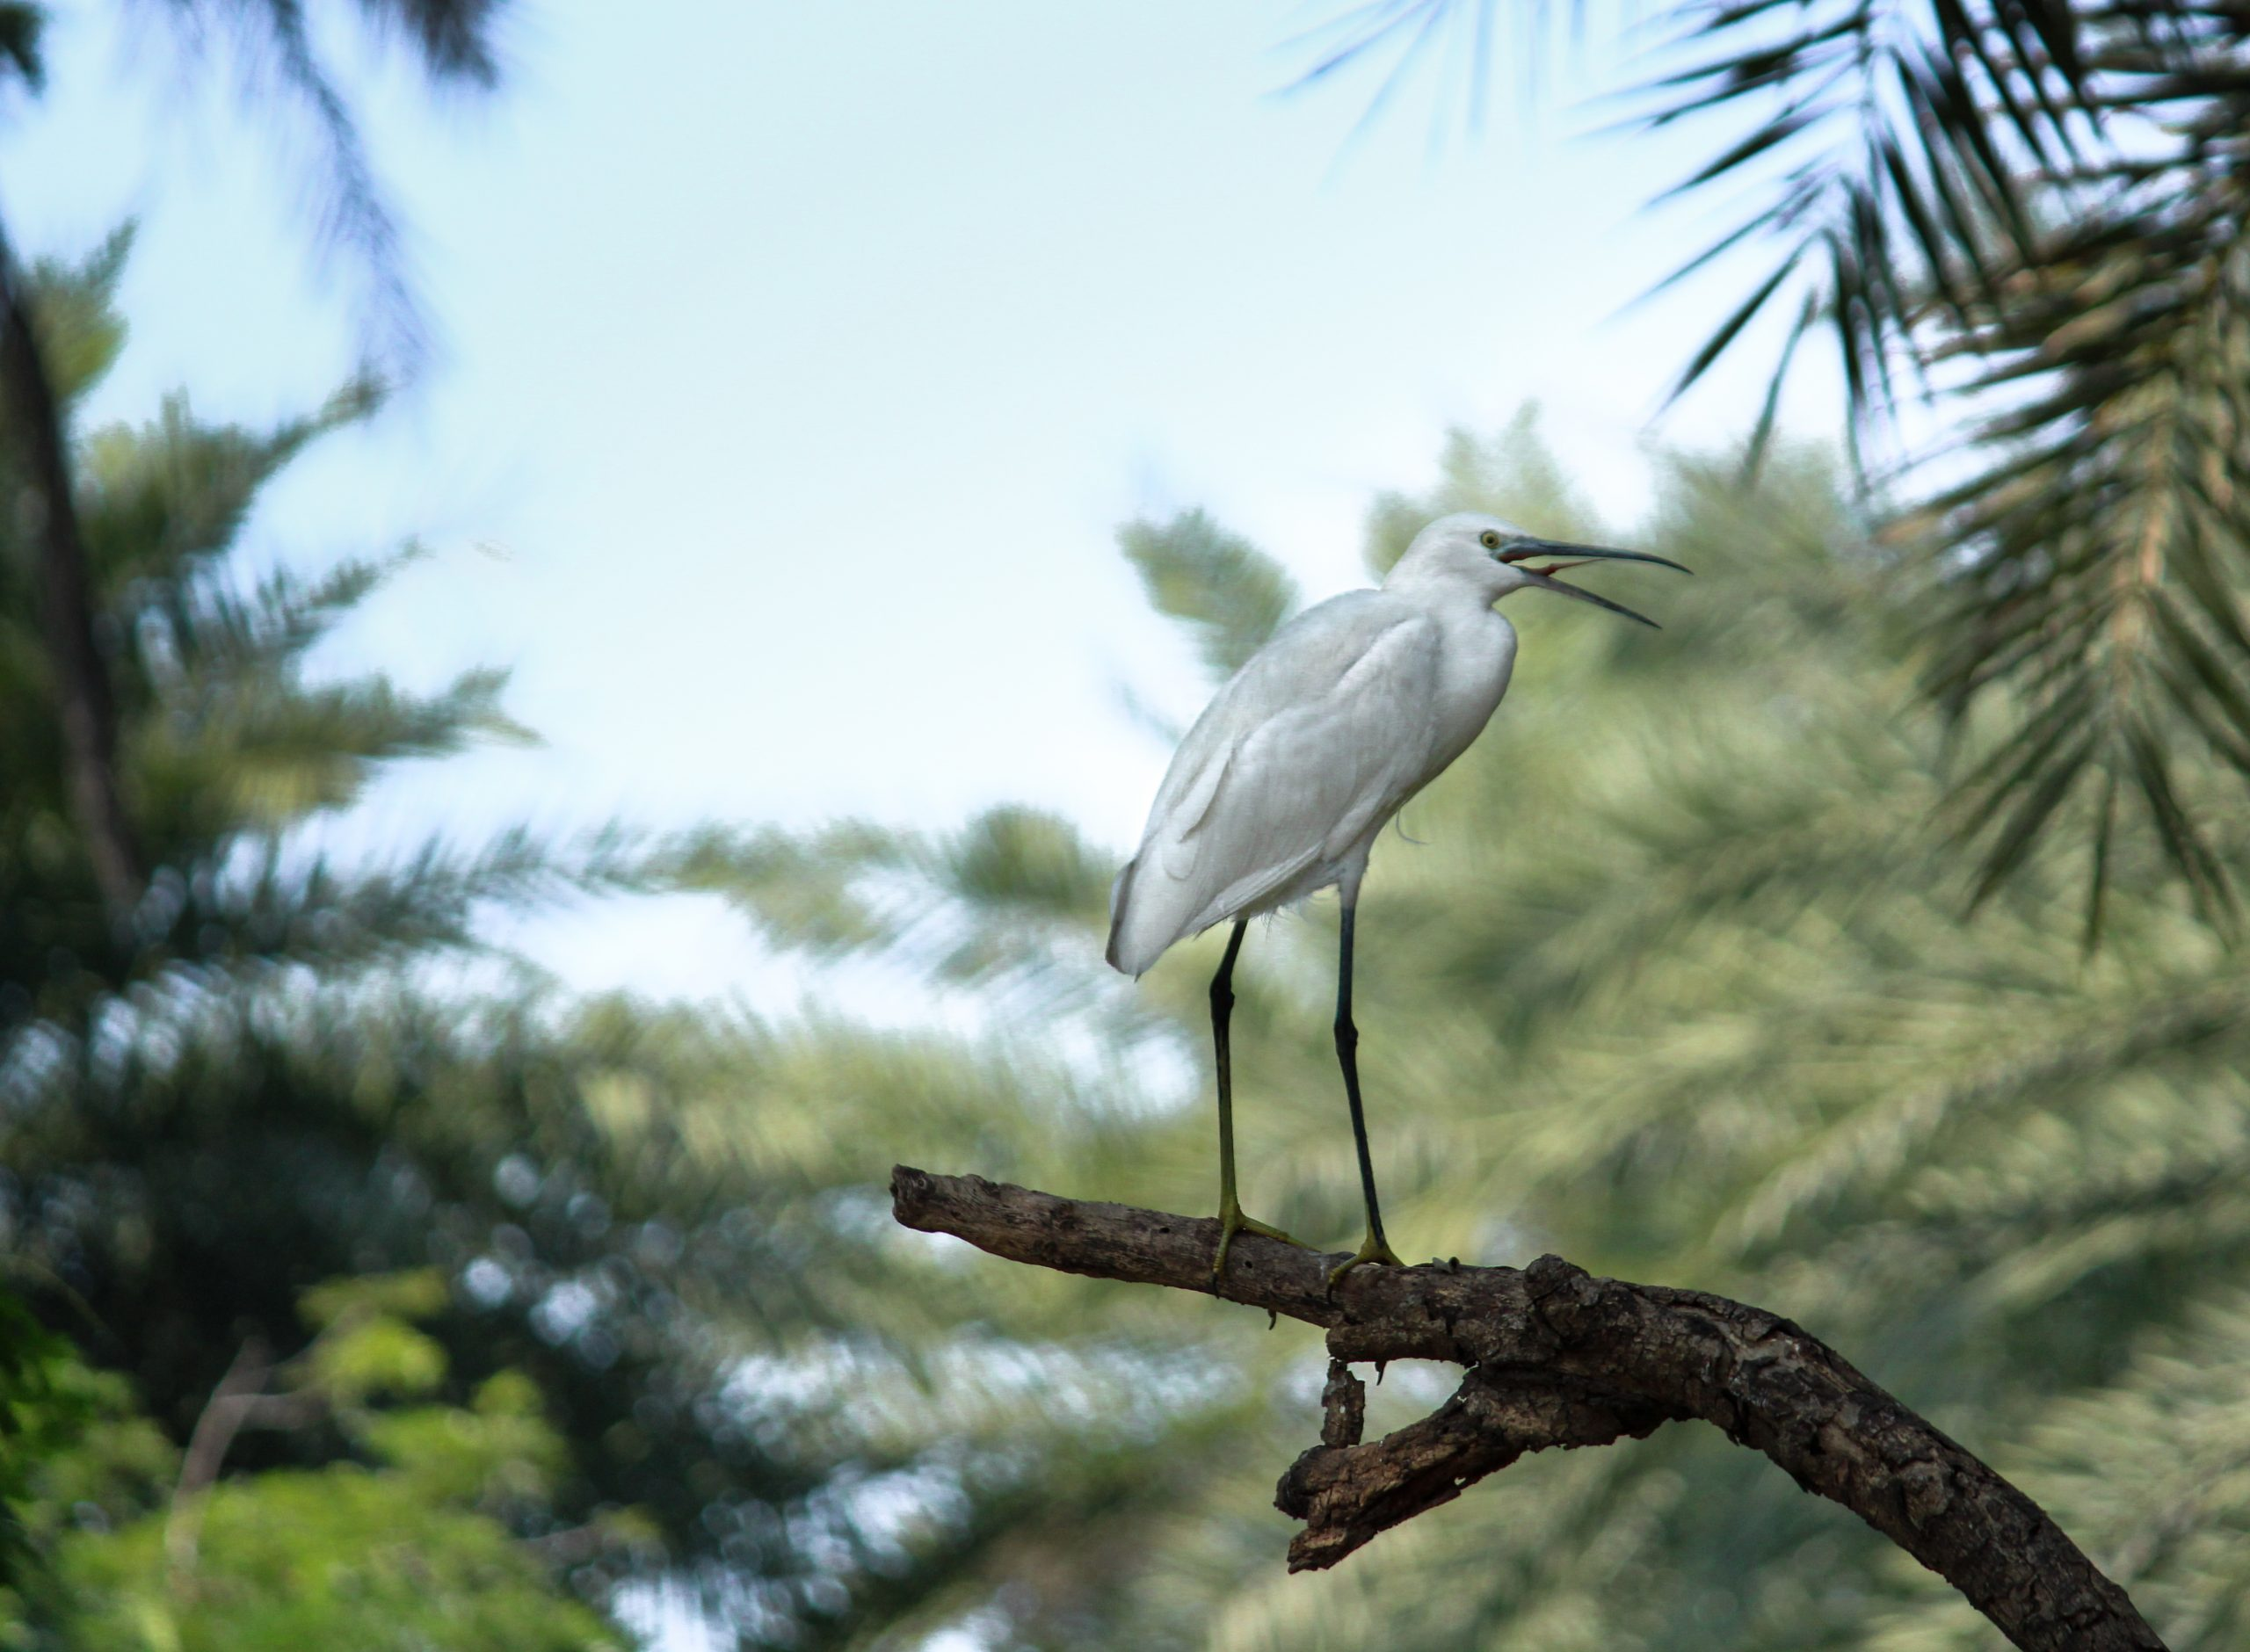 White bird sitting on the branch of tree